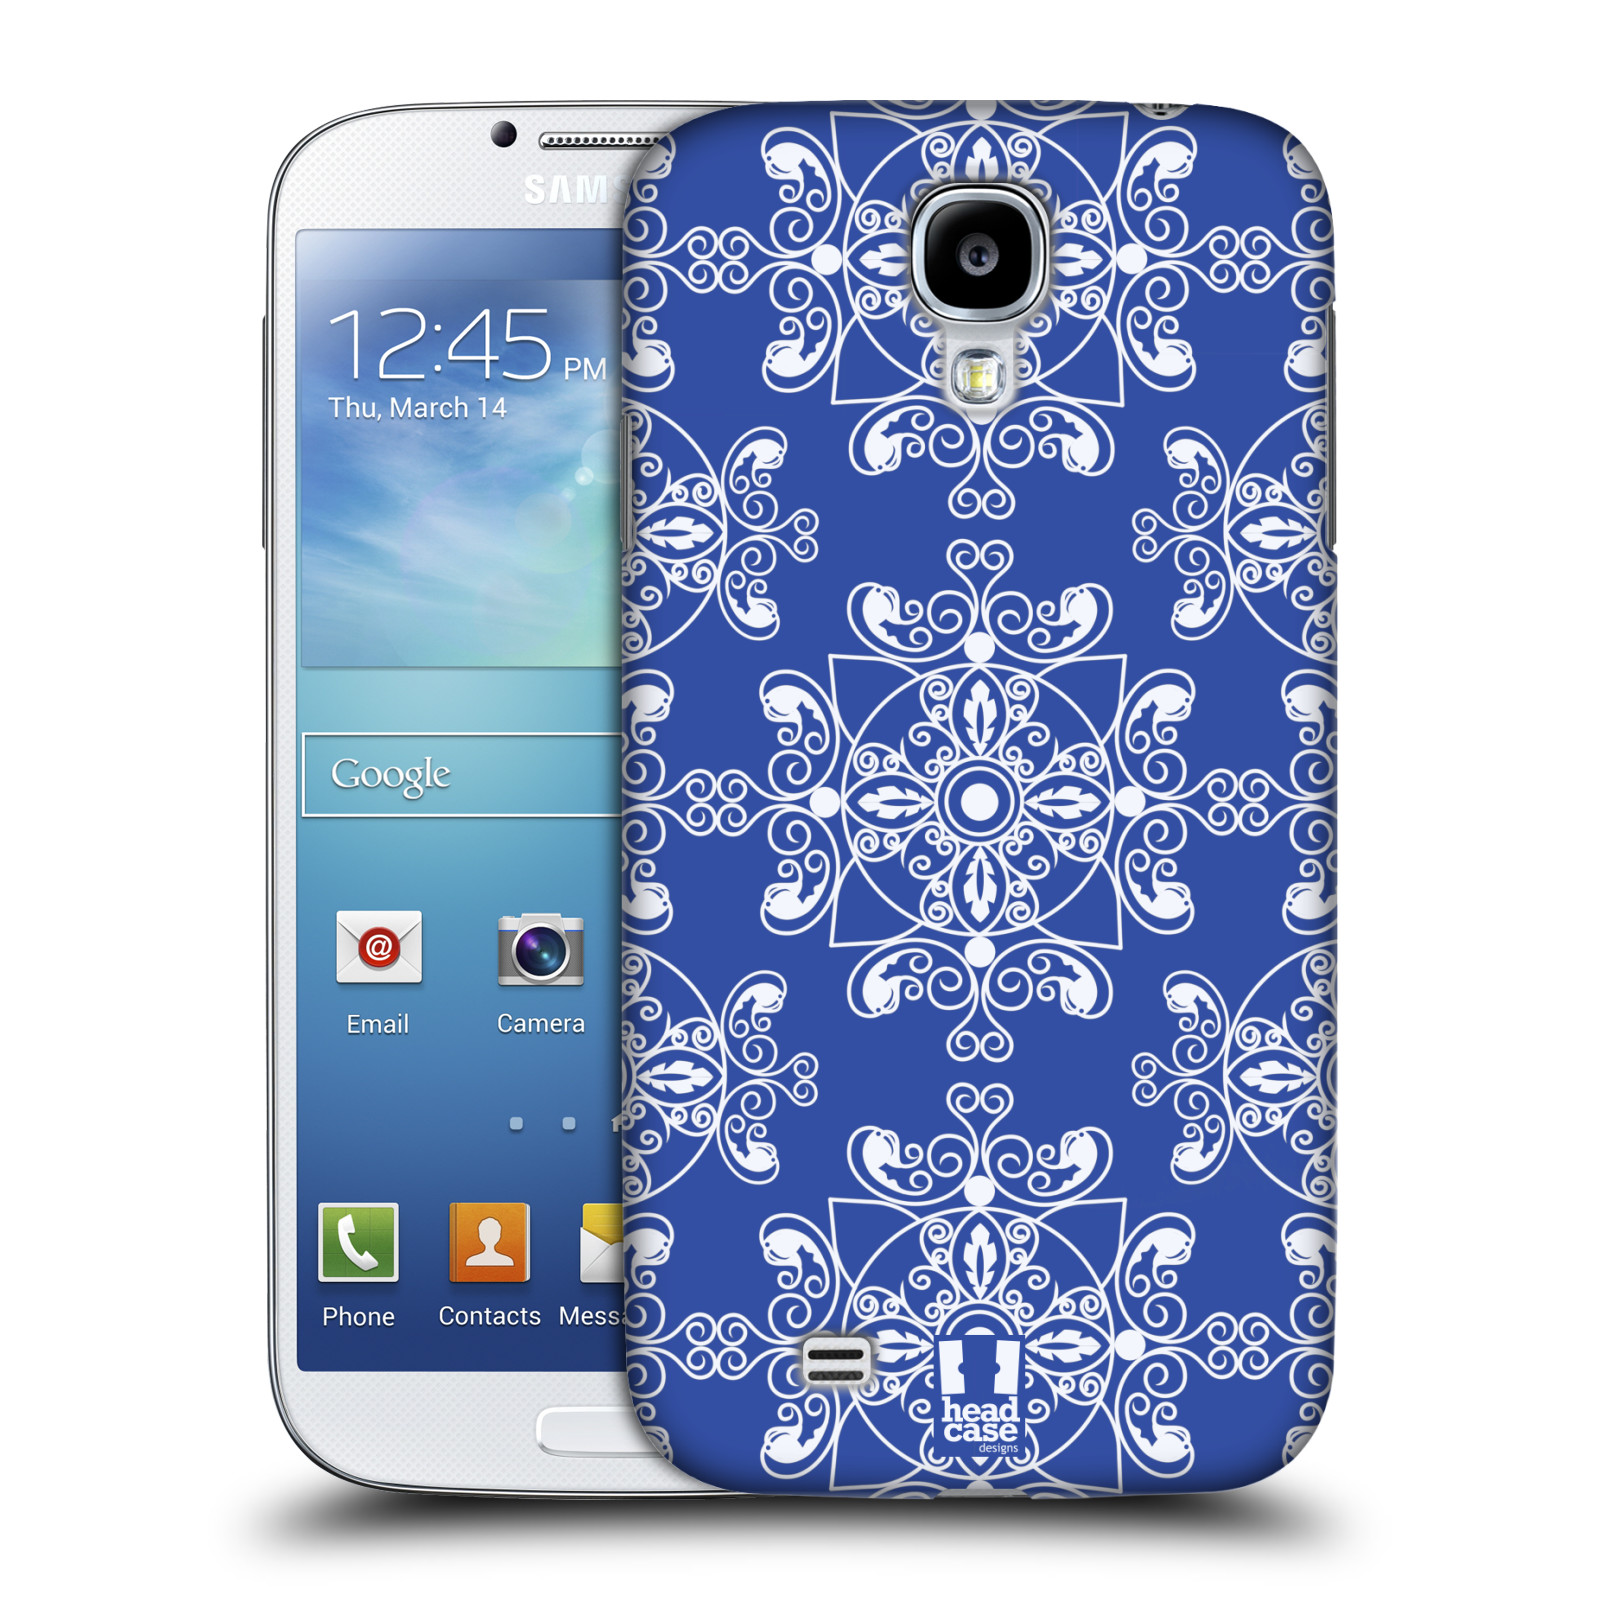 HEAD CASE DESIGNS DAZZLING BLUE PATTERN CASE COVER FOR SAMSUNG GALAXY S4 I9500